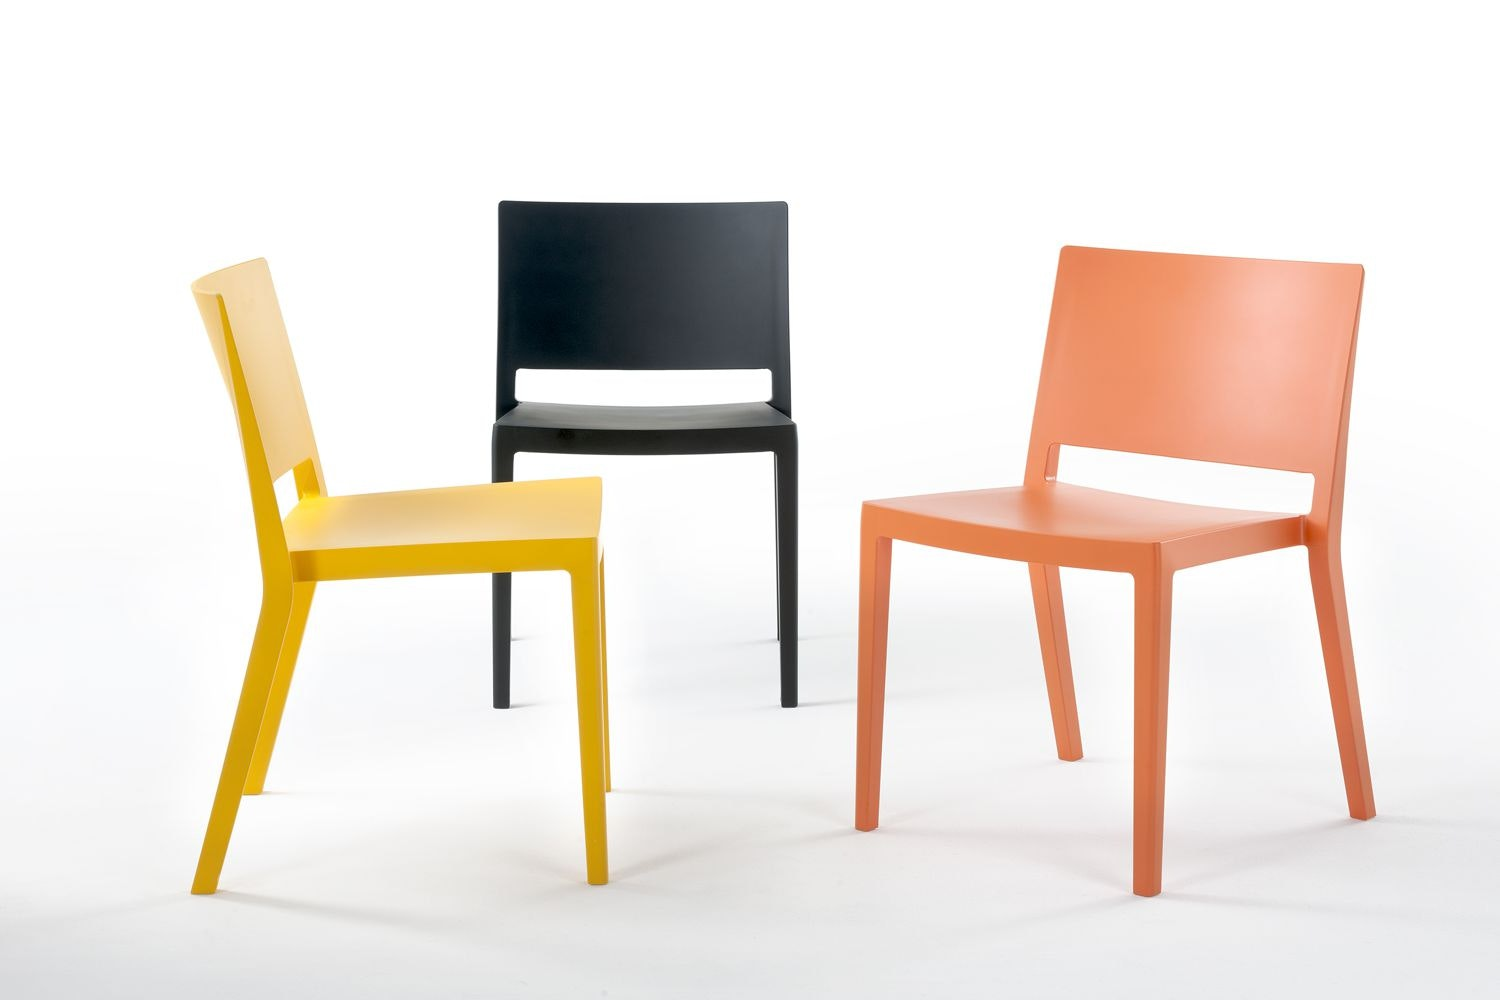 Lizz Mat Chair by Piero Lissoni for Kartell